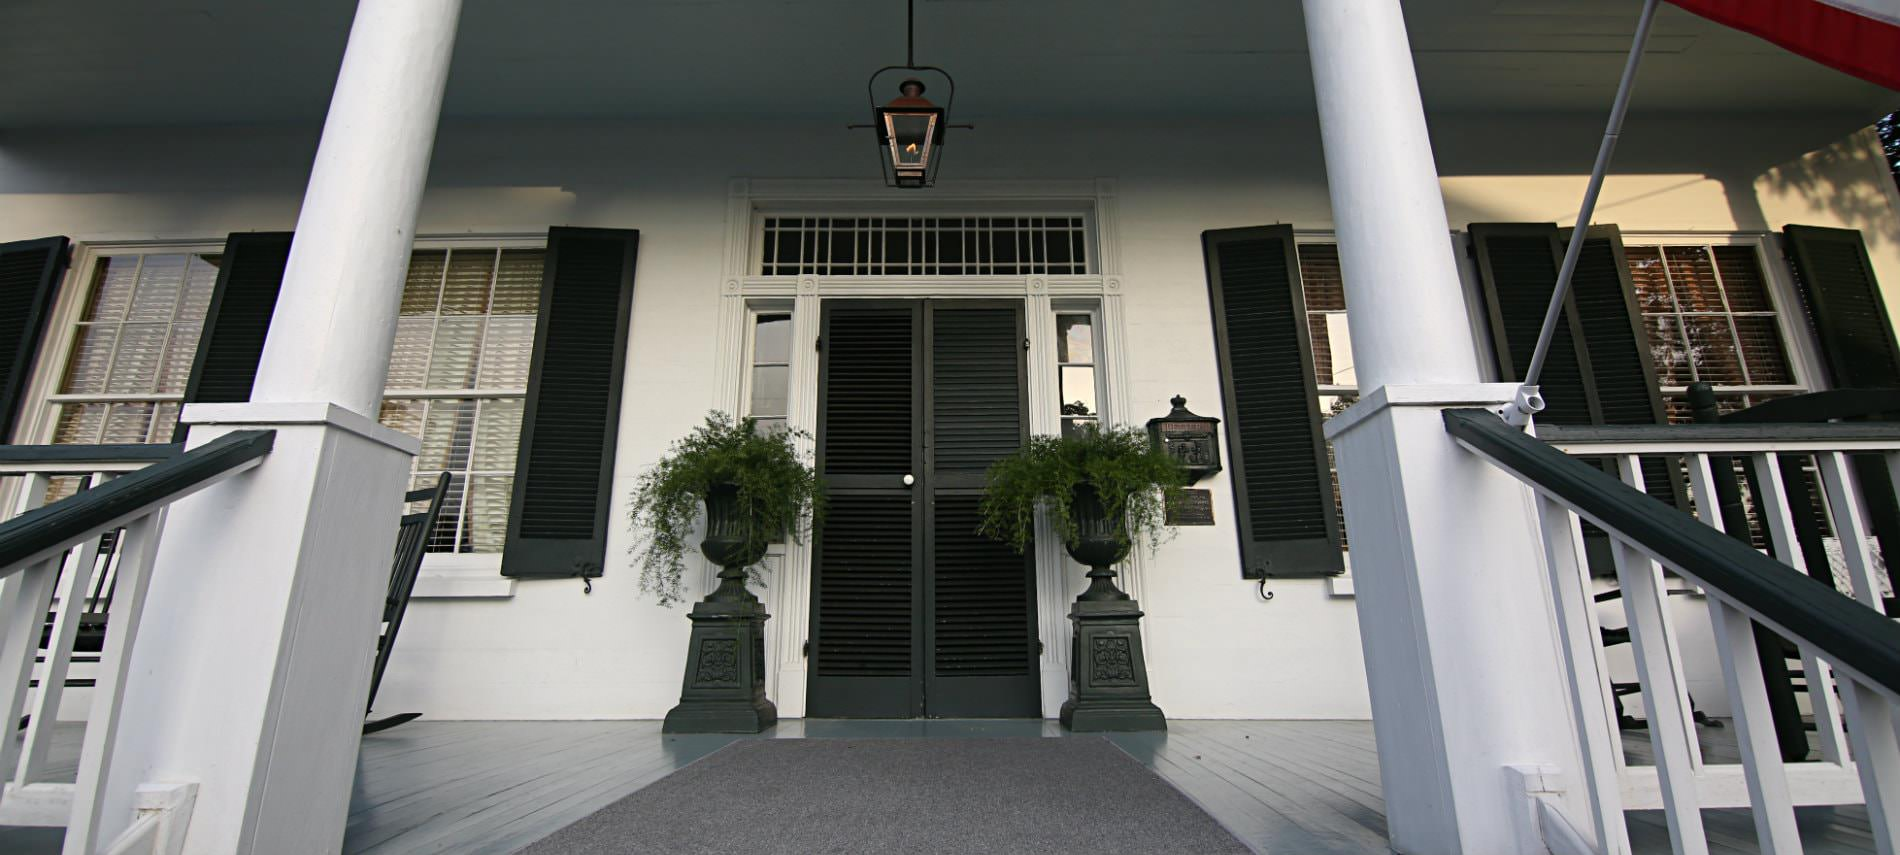 White colonial home with black shutters and front door with two black pedestials holding greenery